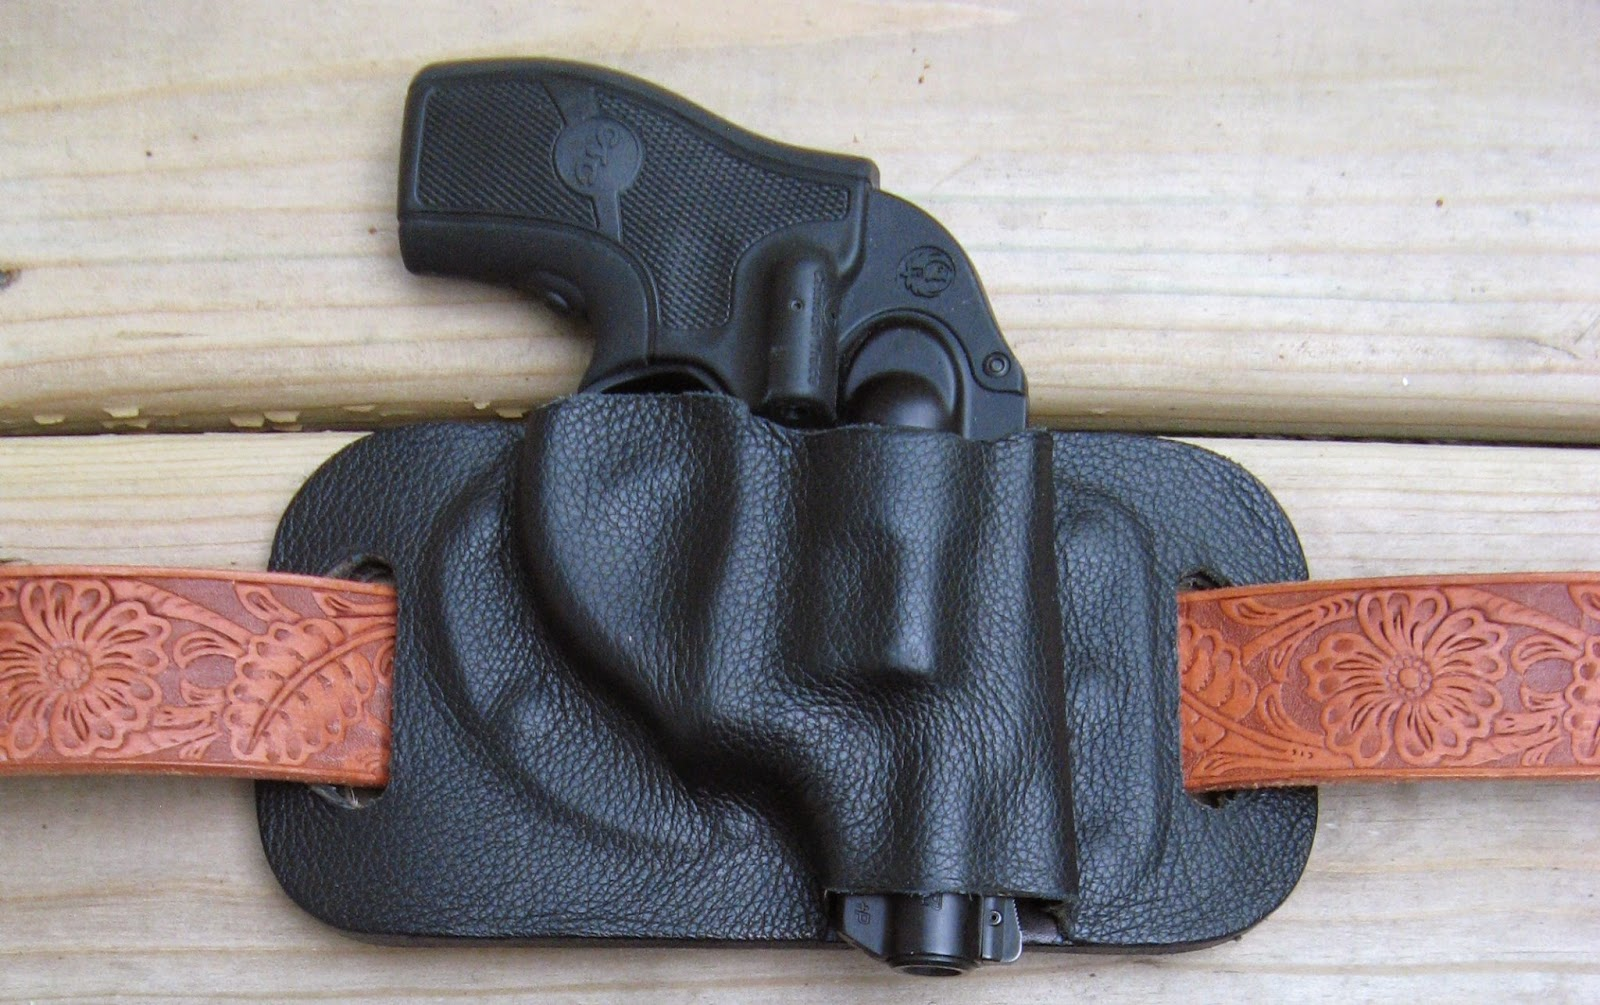 FALIA REVIEWS: CONCEALED CARRY & HOLSTERS